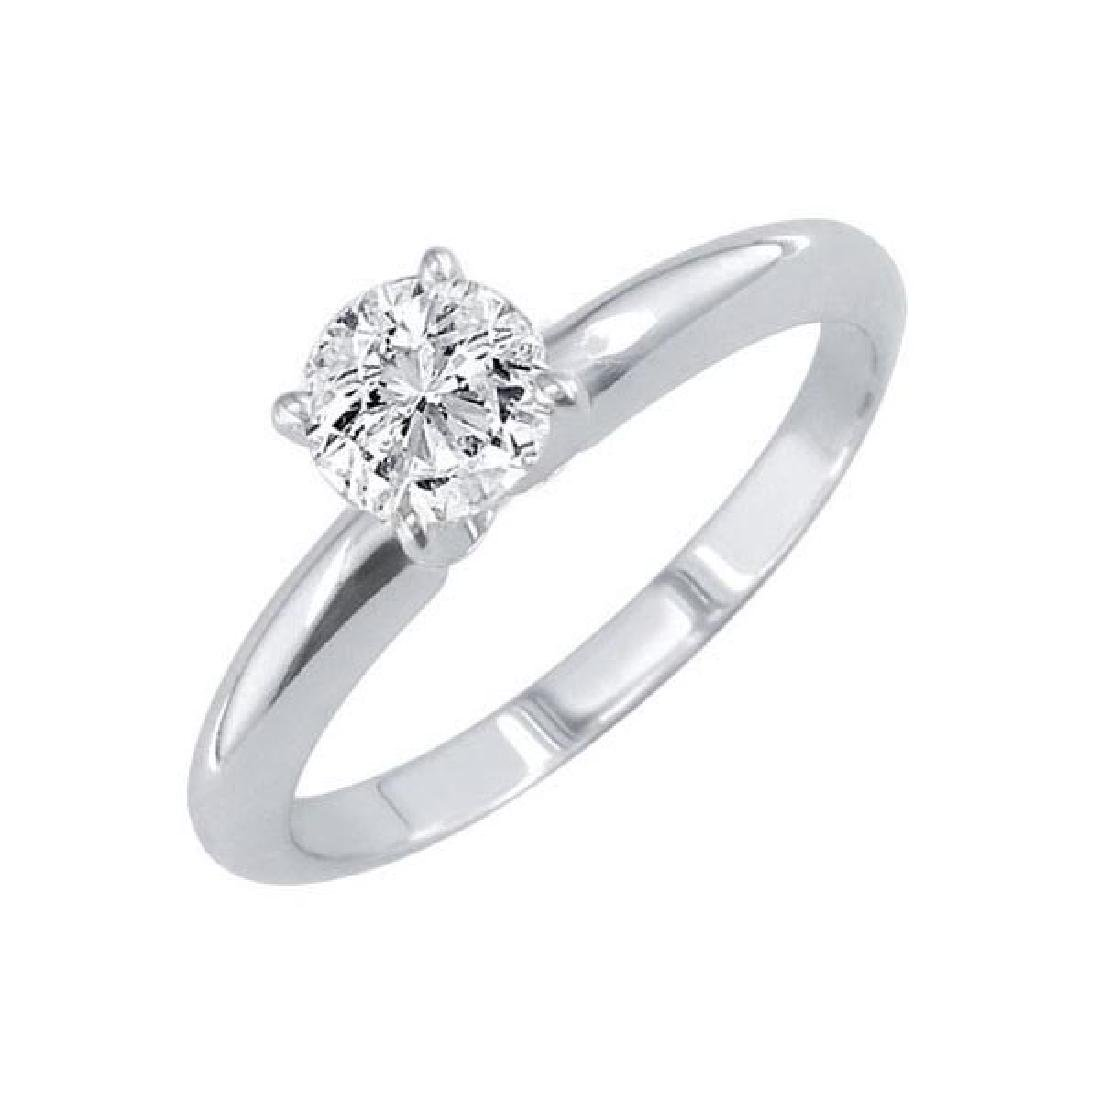 Certified 1.01 CTW Round Diamond Solitaire 14k Ring E/S